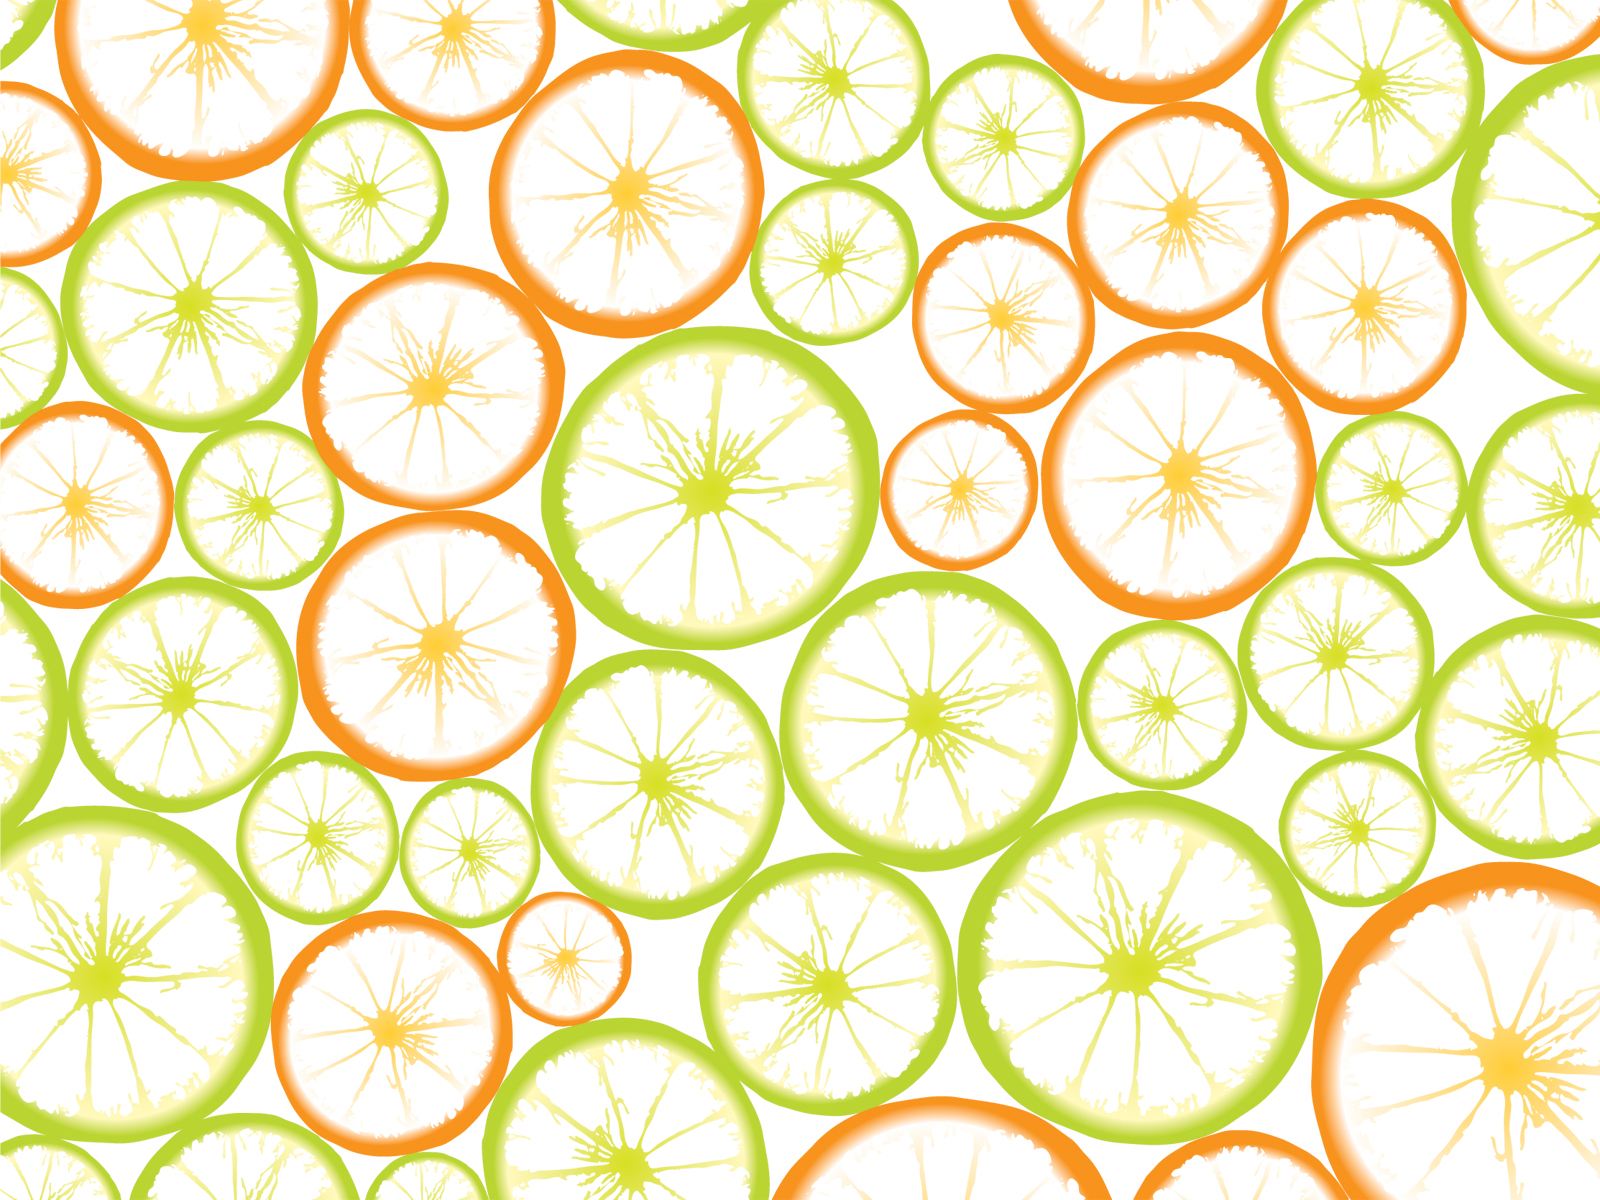 fruit slices backgrounds foods amp drinks green orange